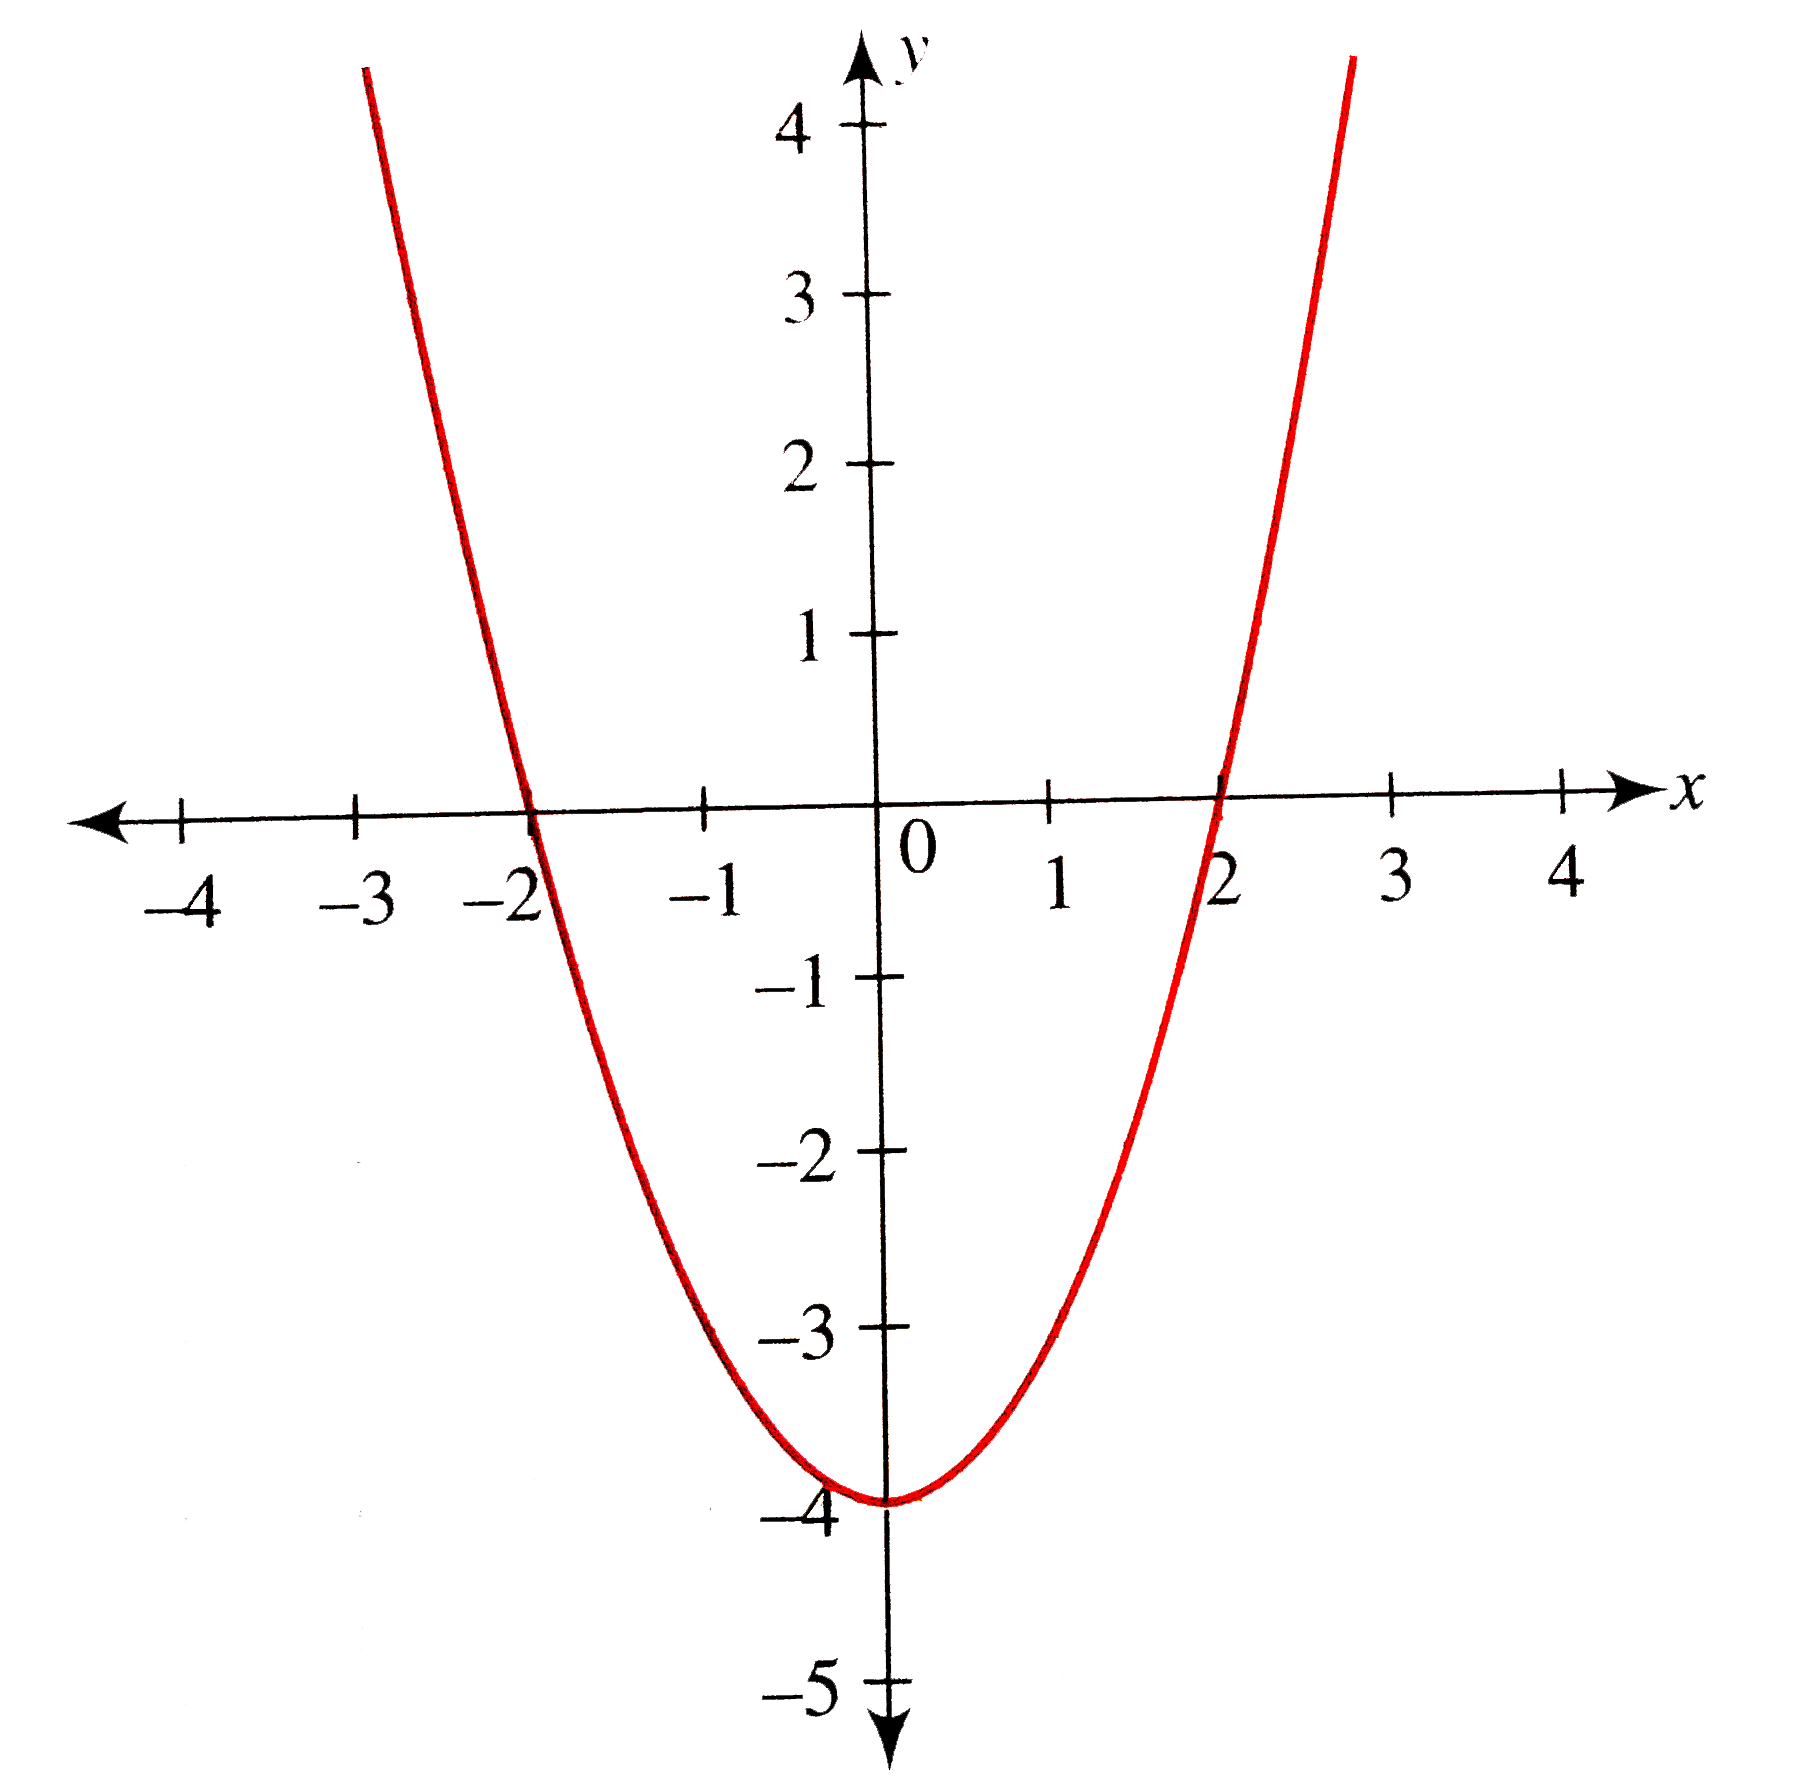 From The Graph Of Y X 2 4 Draw The Graph Of Y 1 X 2 4